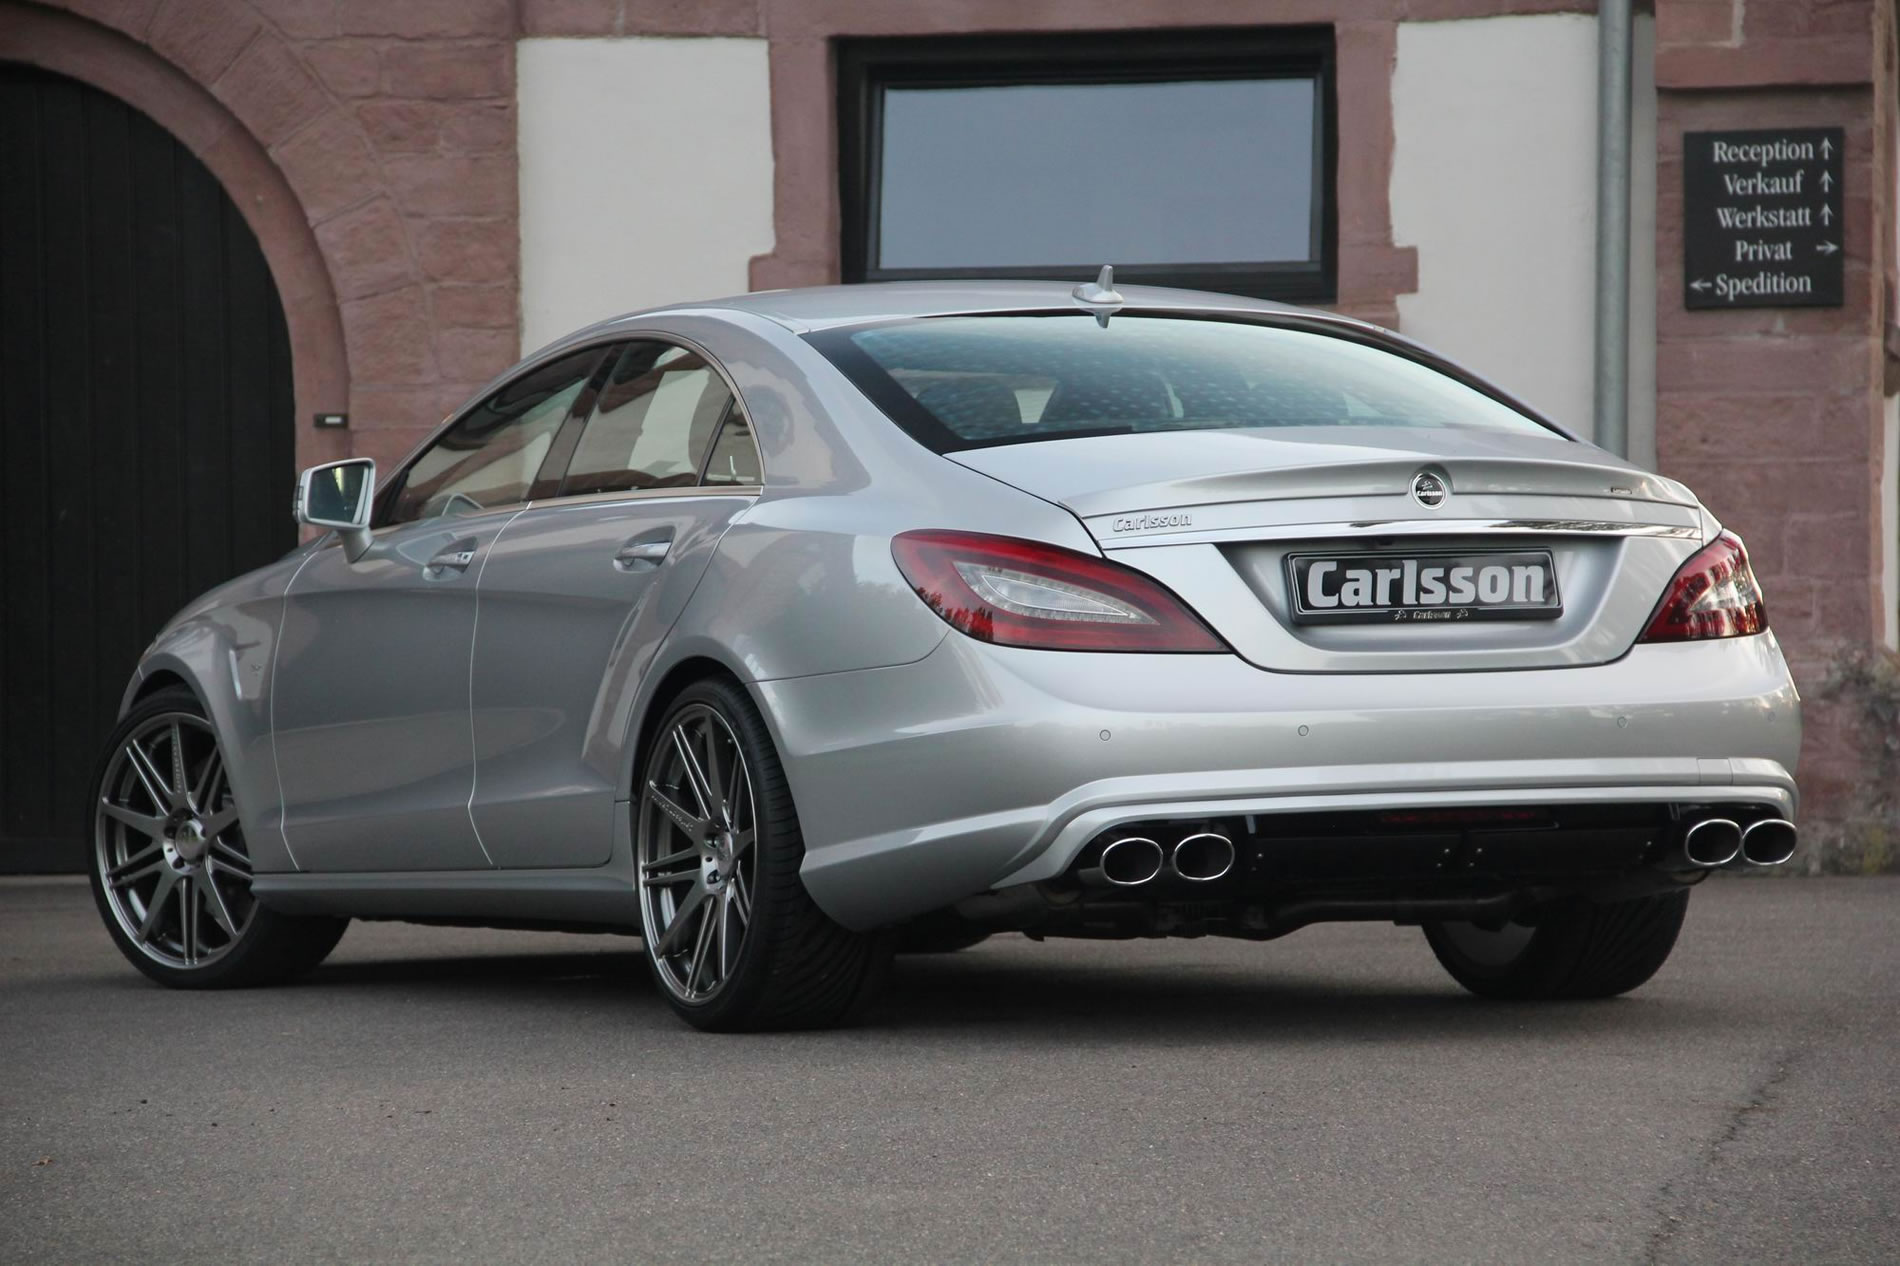 2013 mercedes benz ck63 rsr by carlsson rear photo for Mercedes benz 1900 model